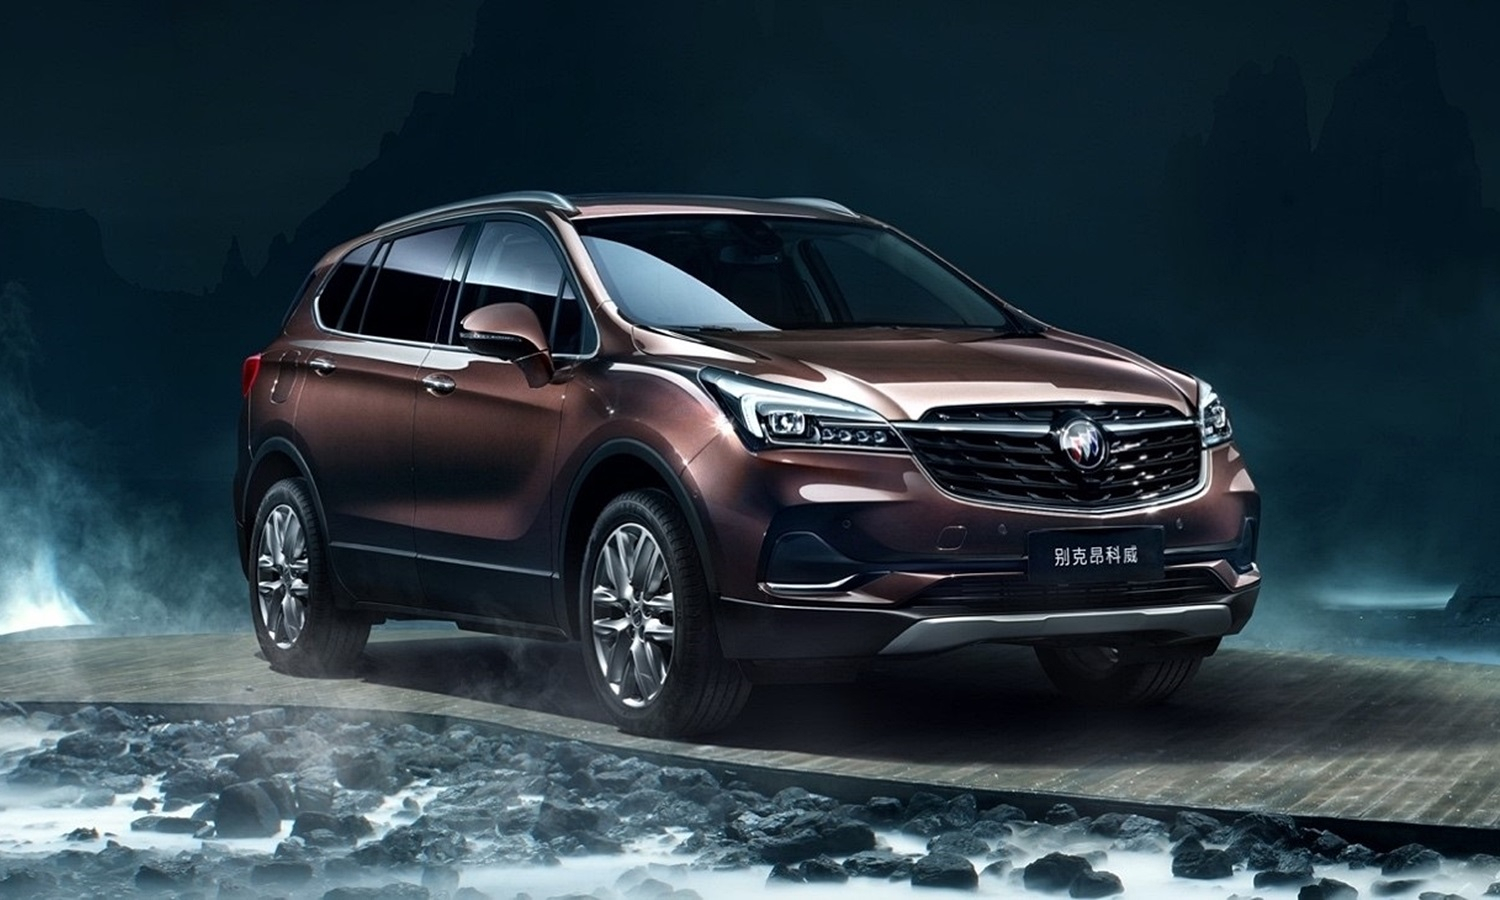 Buick Envision Set For Refresh This Year | Gm Authority 2021 Buick Envision Lease, Trim Levels, Msrp